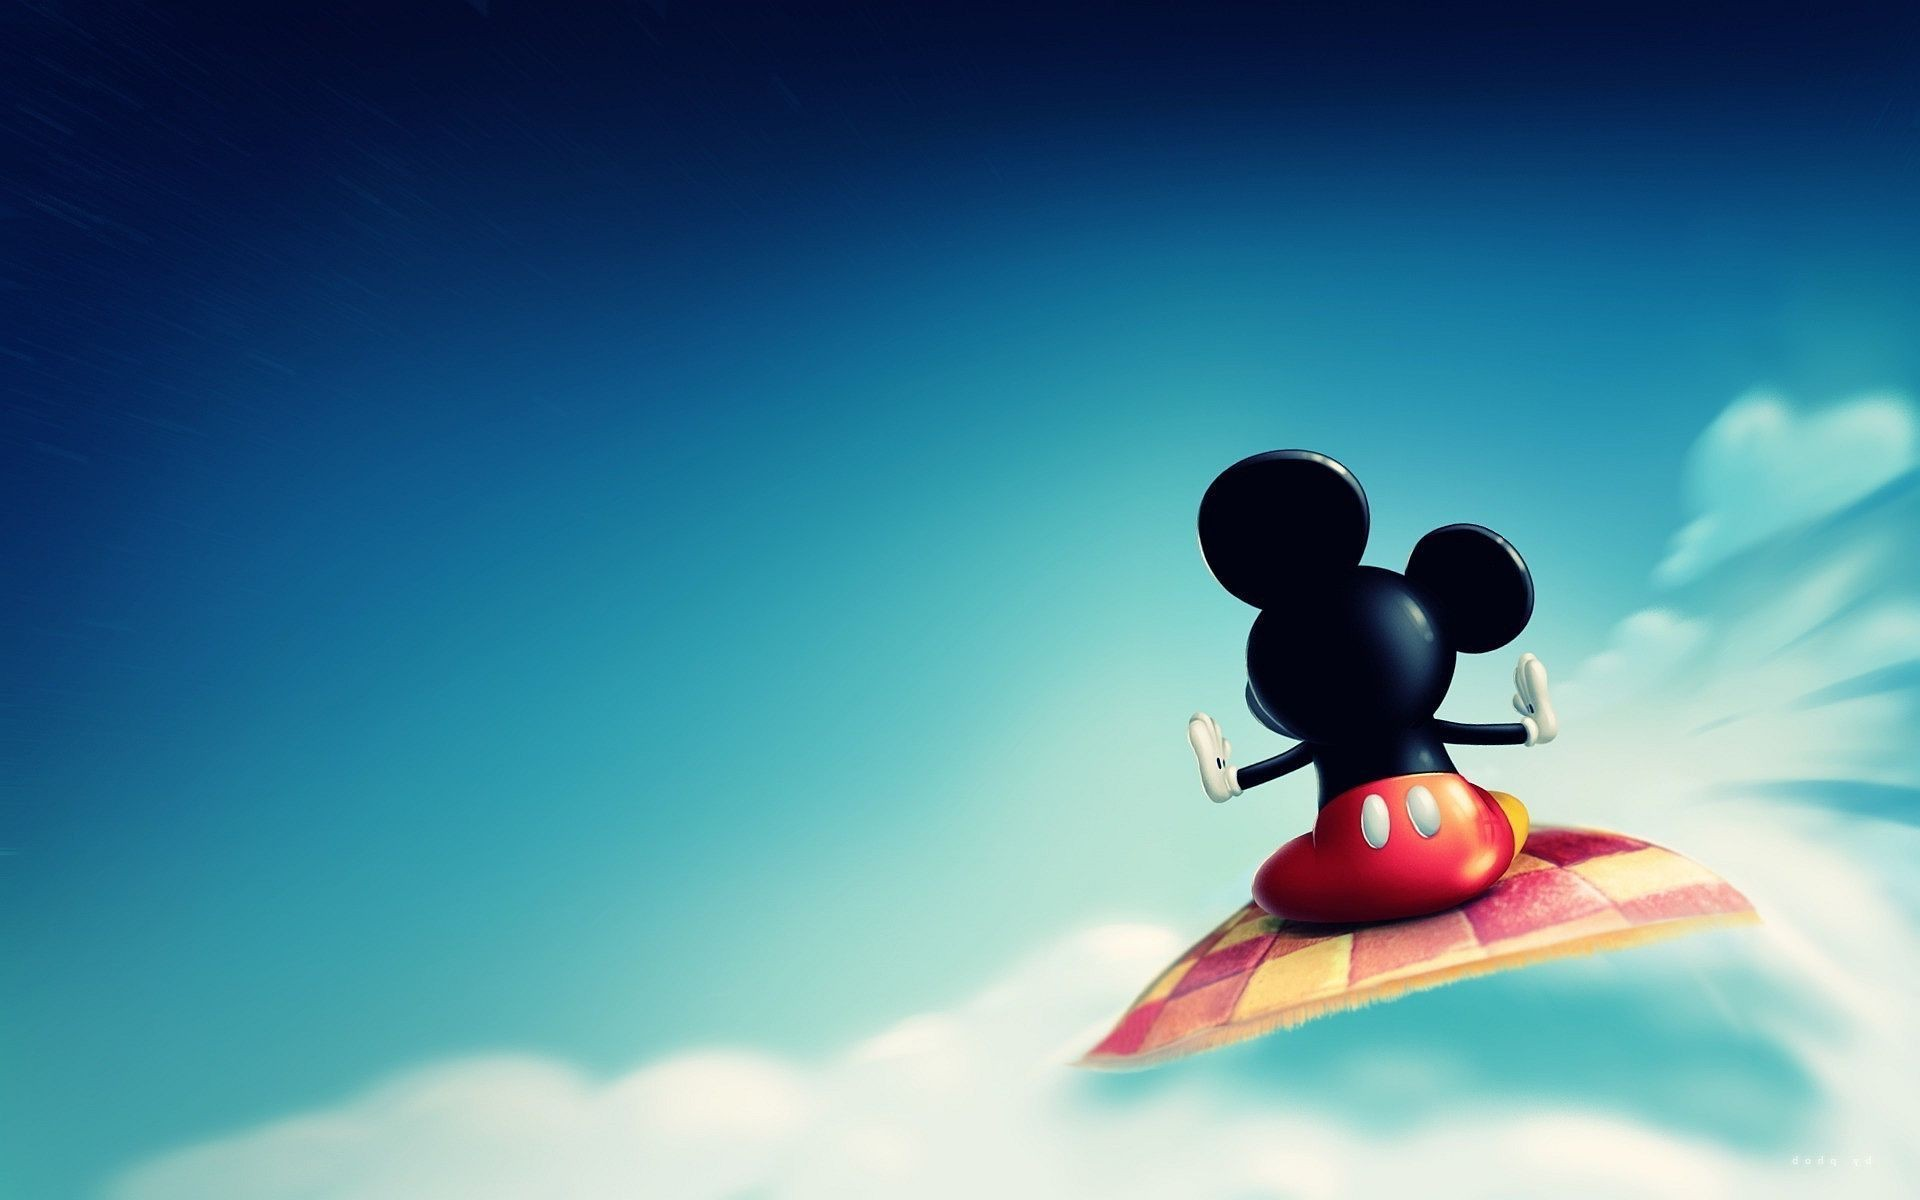 Mickey Mouse wallpaper Download free stunning backgrounds for